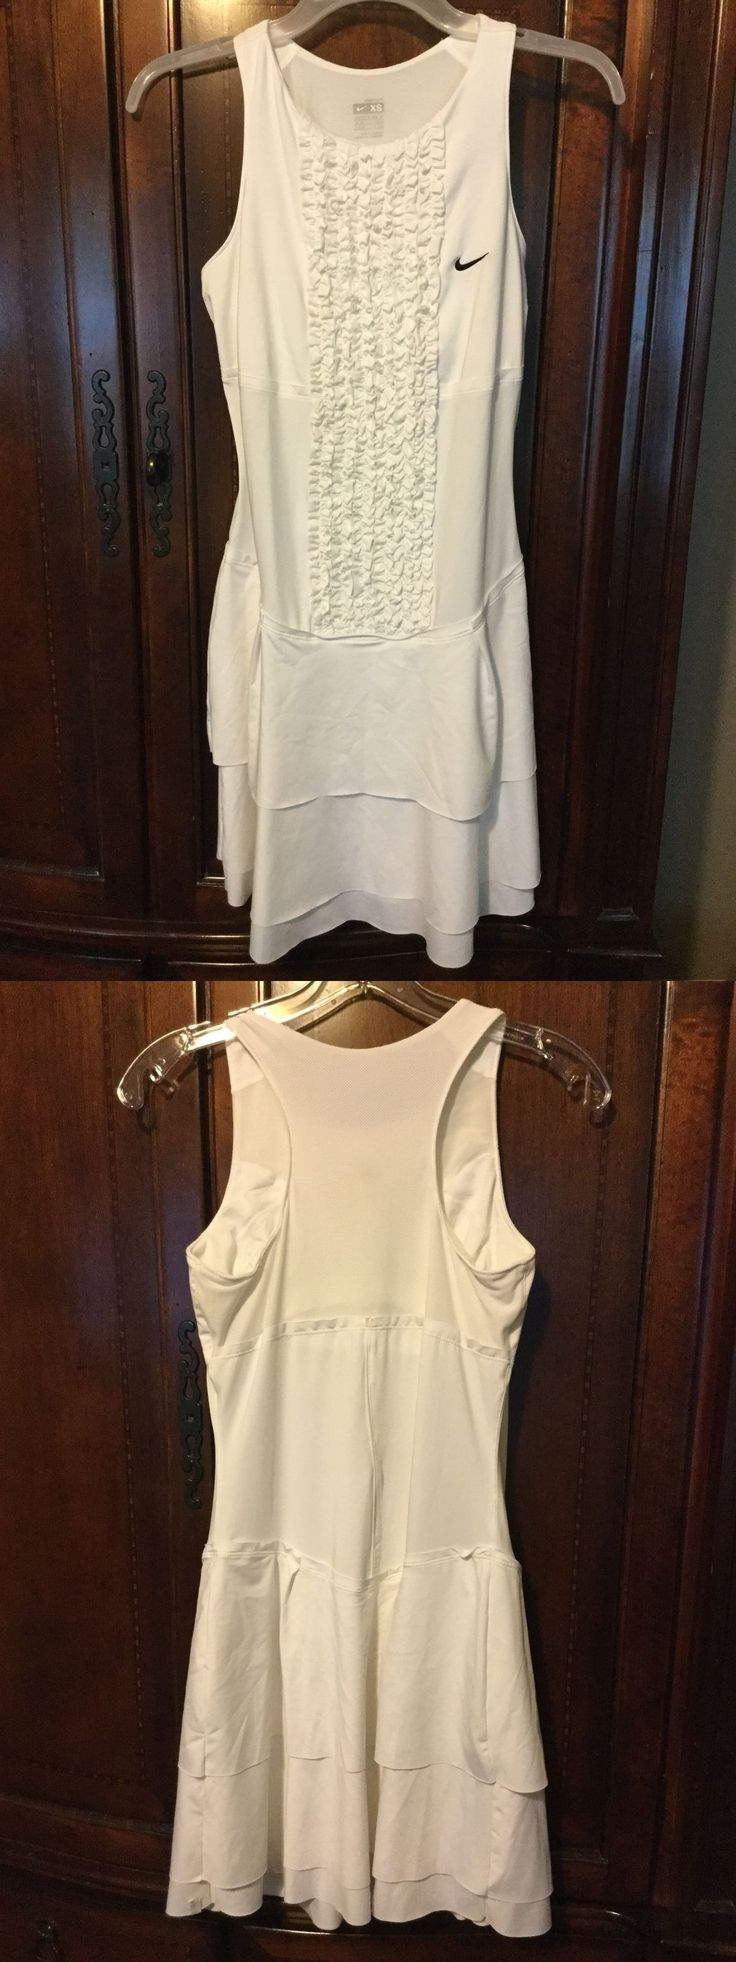 Other Racquet Sport Clothing 70903: New Nike Wimbledon Grass Court Ruffled Tiered Tennis Dress 348334-100 Xs X-Small -> BUY IT NOW ONLY: $49.95 on eBay!